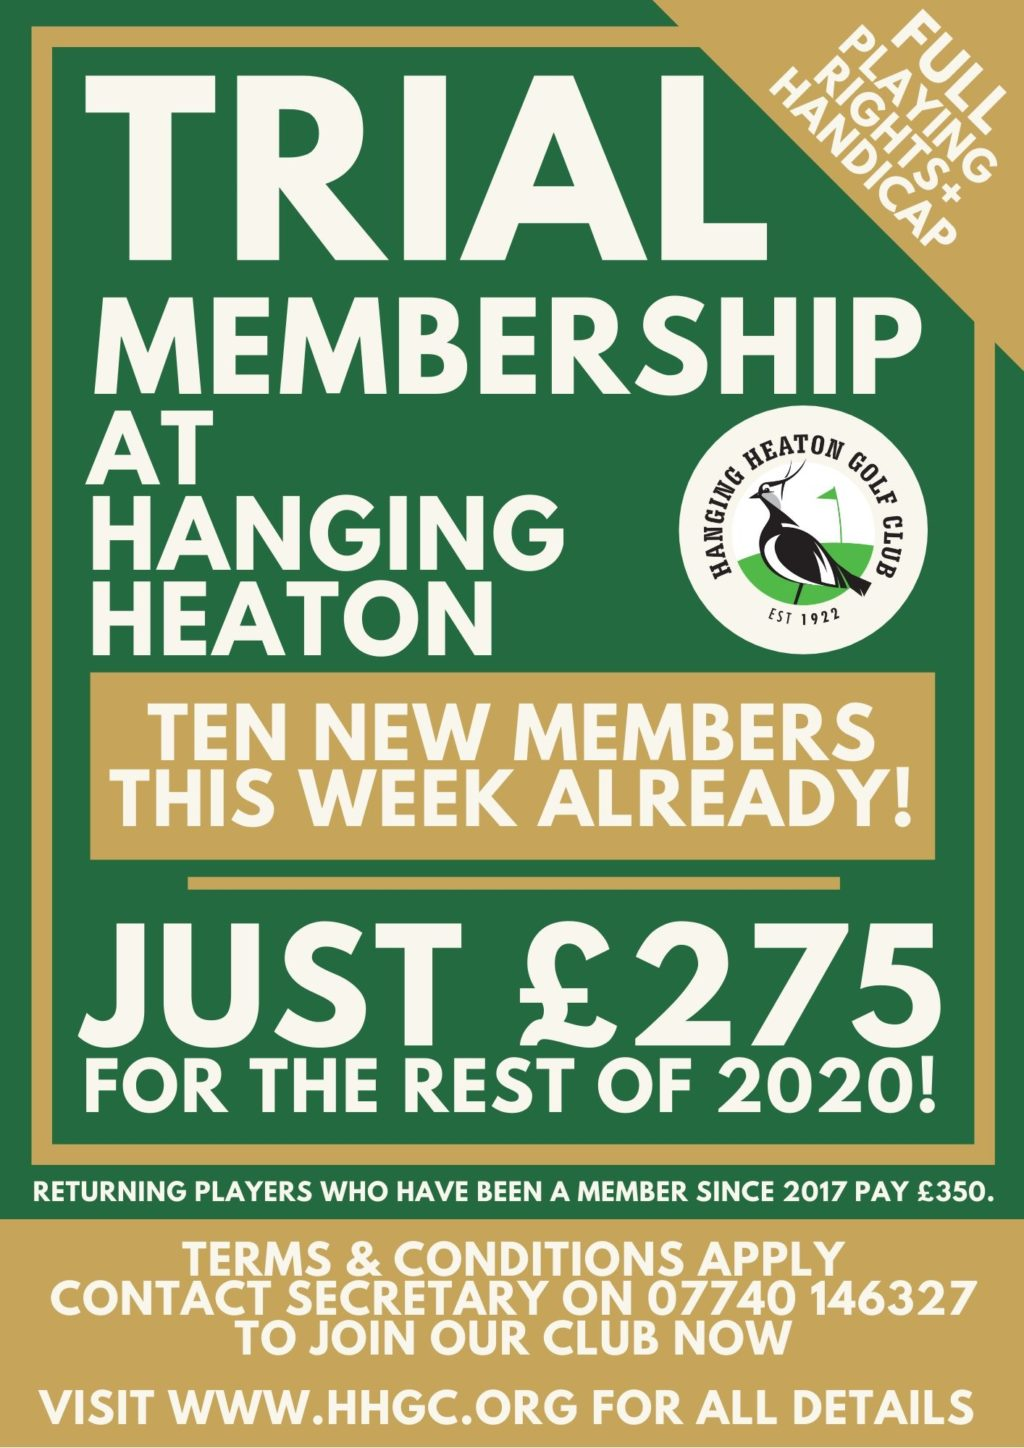 trial membership at hanging heaton golf club proves an early success